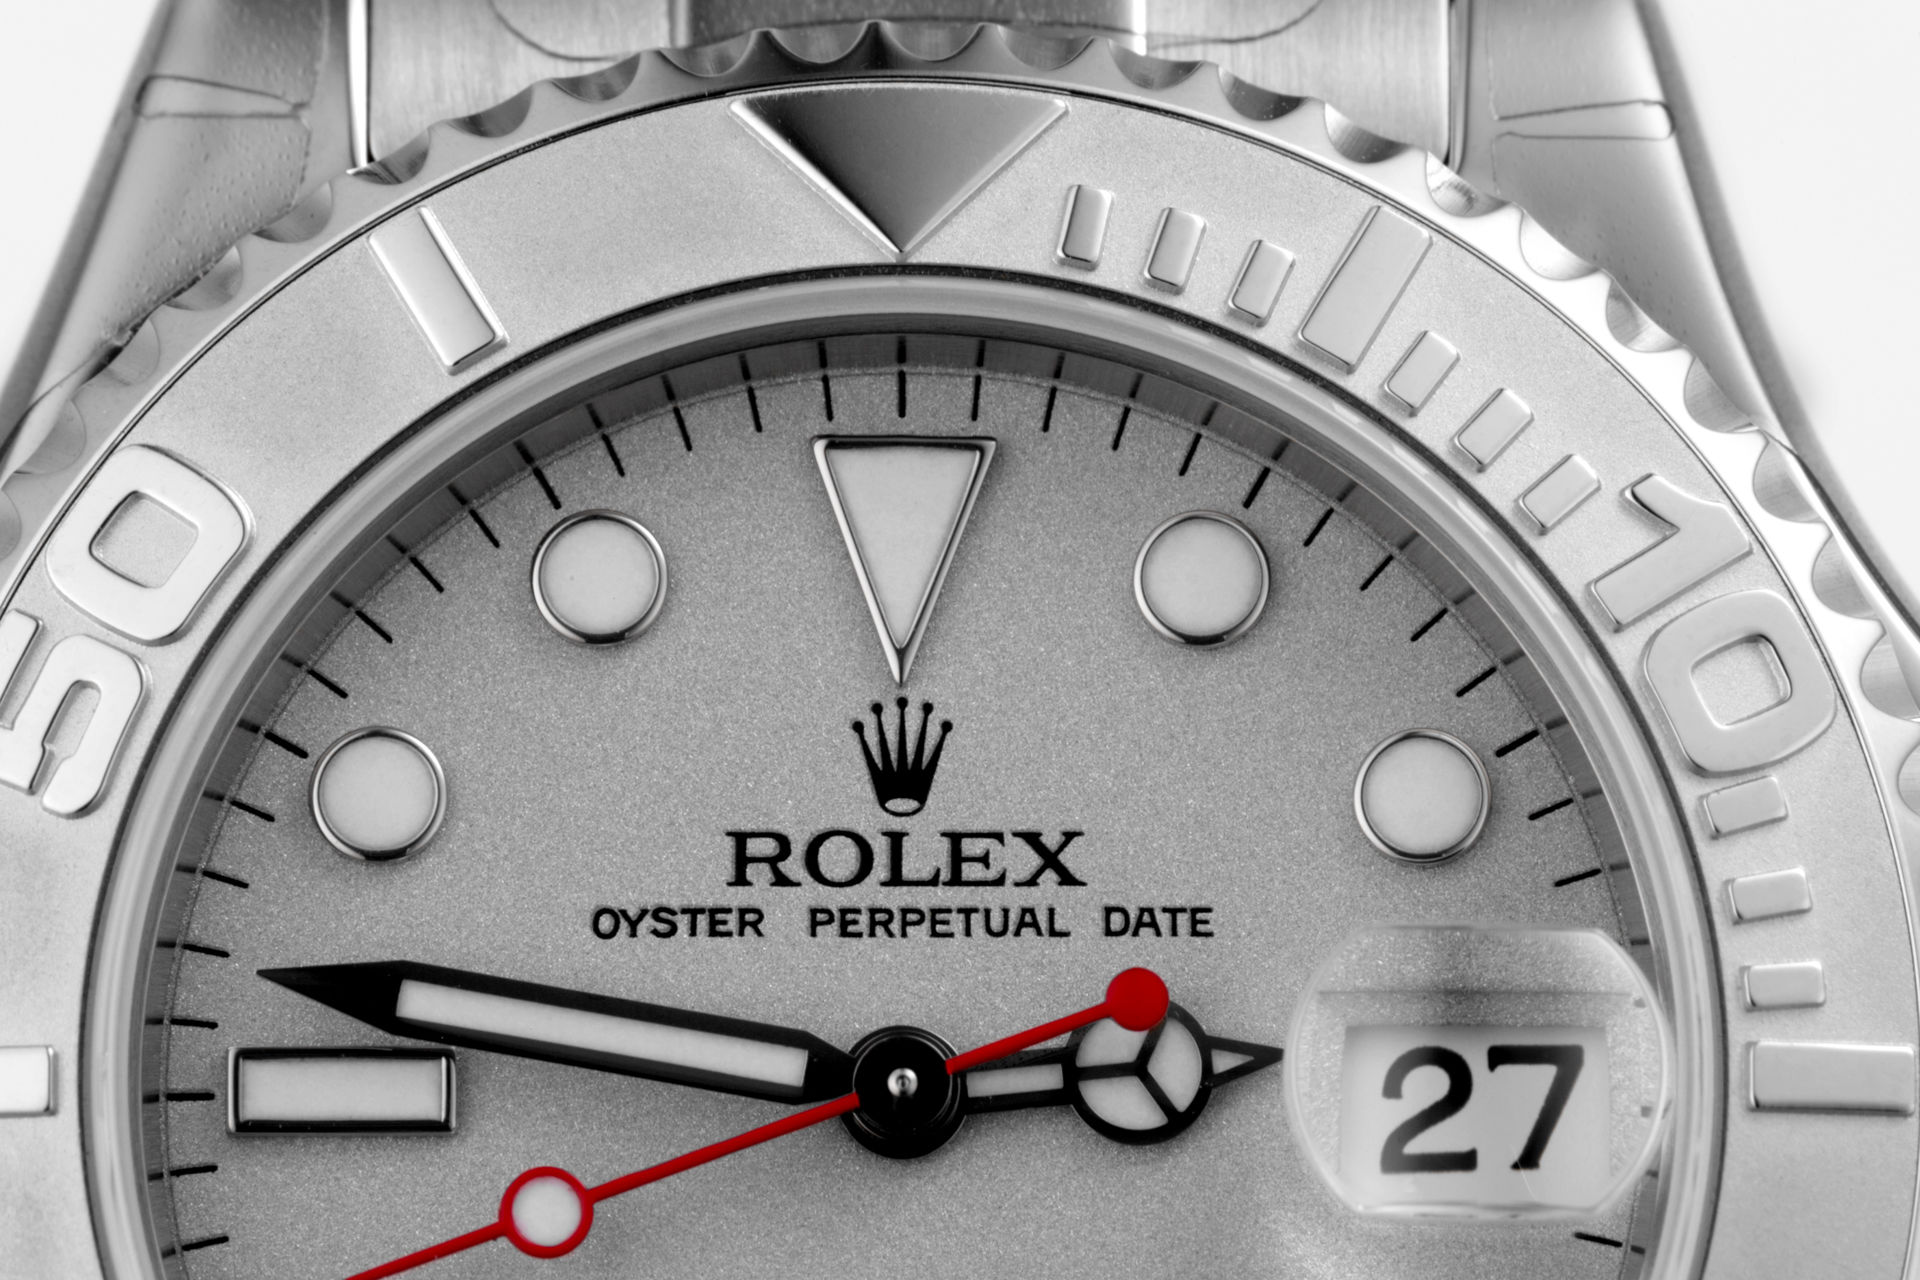 ref 168622 | 'Unworn & Fully Stickered' | Rolex Yacht-Master